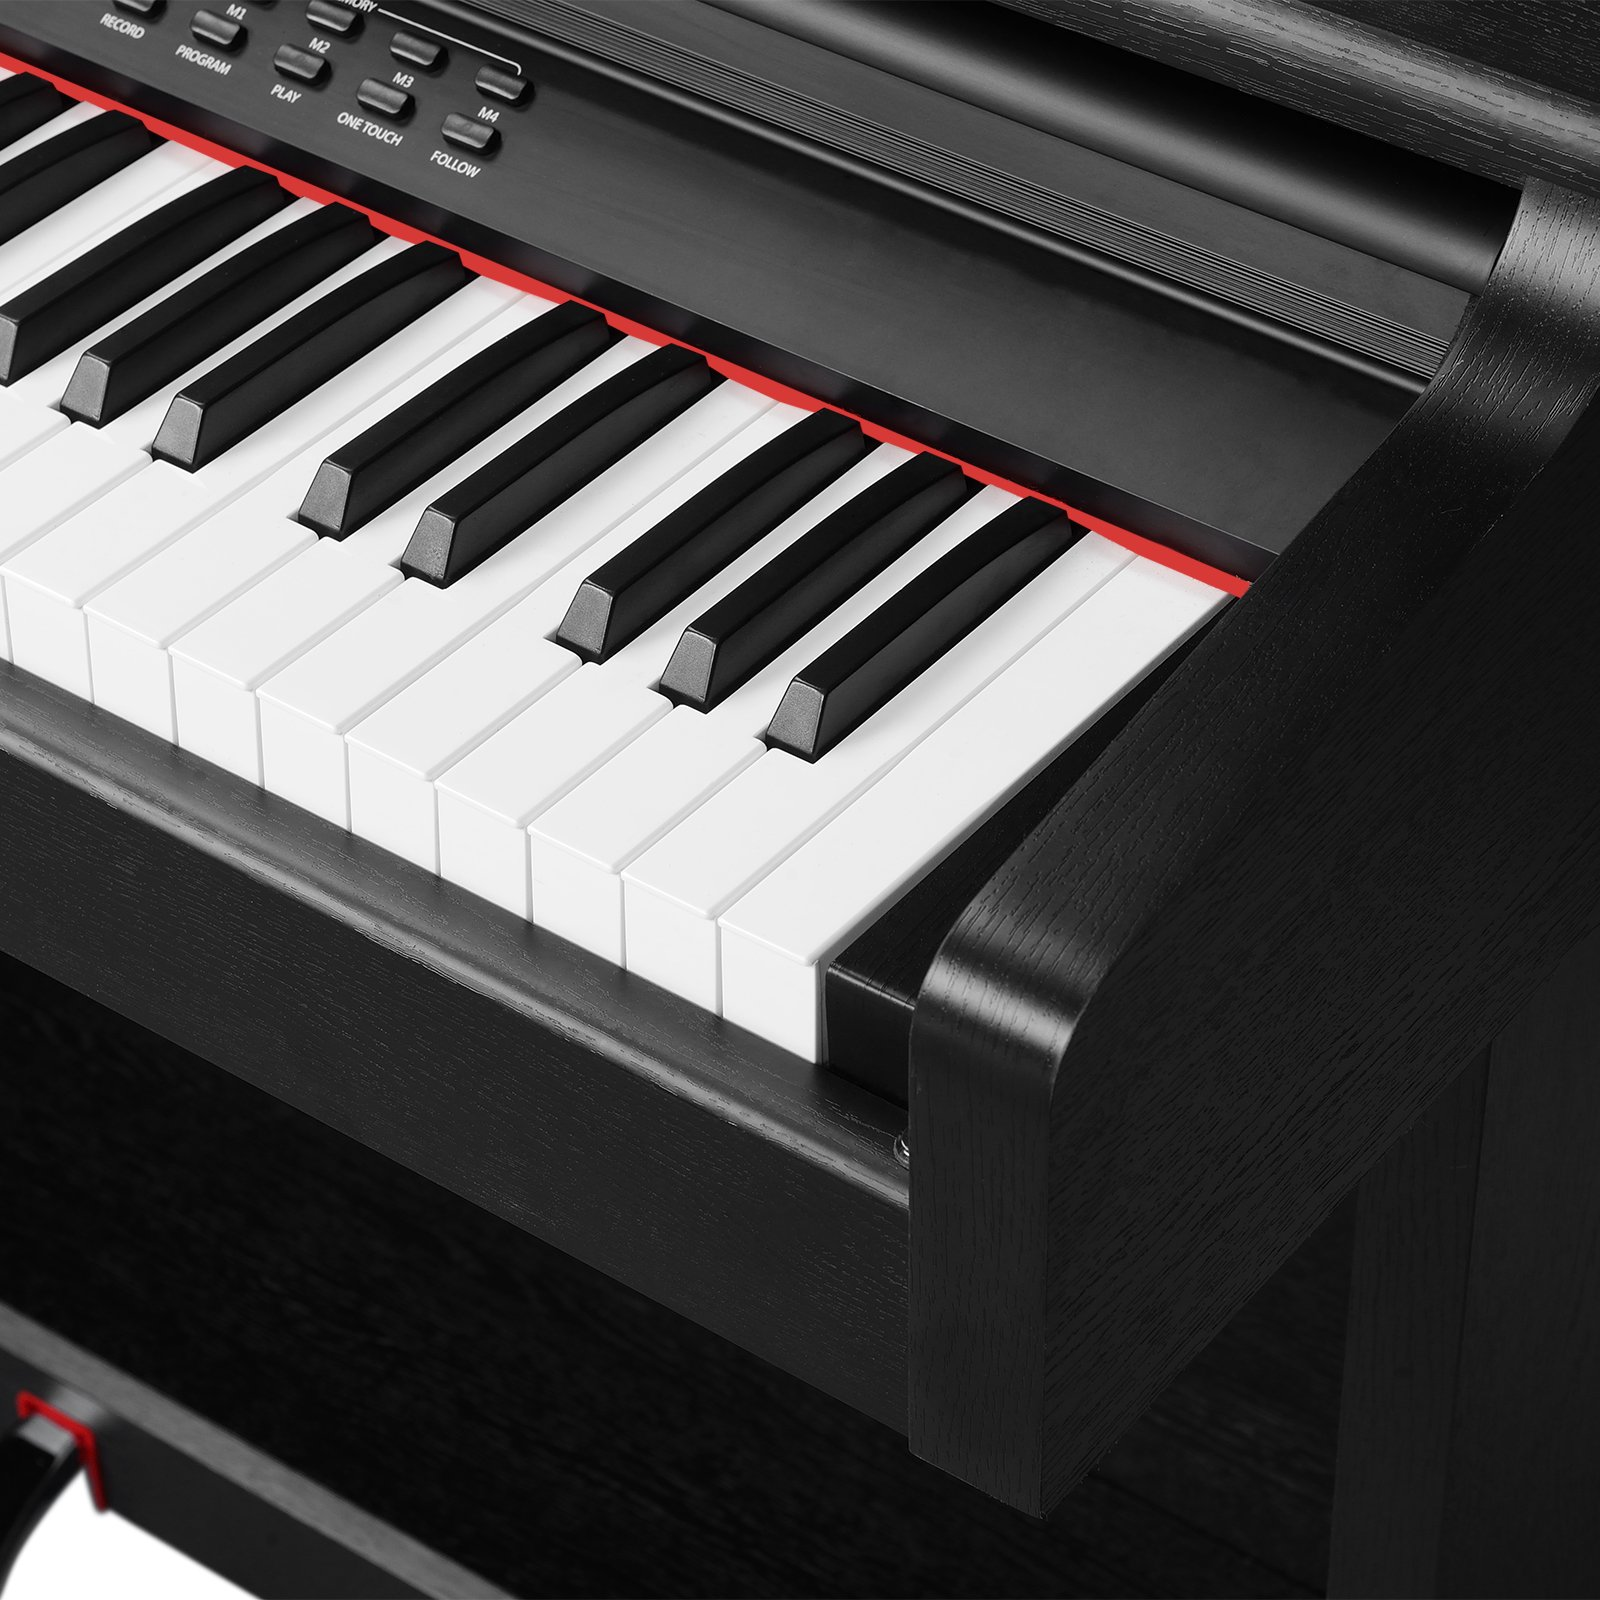 LAGRIMA Digital Piano, 88 Keys Electric Keyboard Piano for Beginner(Kids/Adults) w/Music Stand+Power Adapter+3 Metal Pedals+Instruction Book, 2 Headphone Jack/Midi/USB Audio Output by LAGRIMA (Image #4)